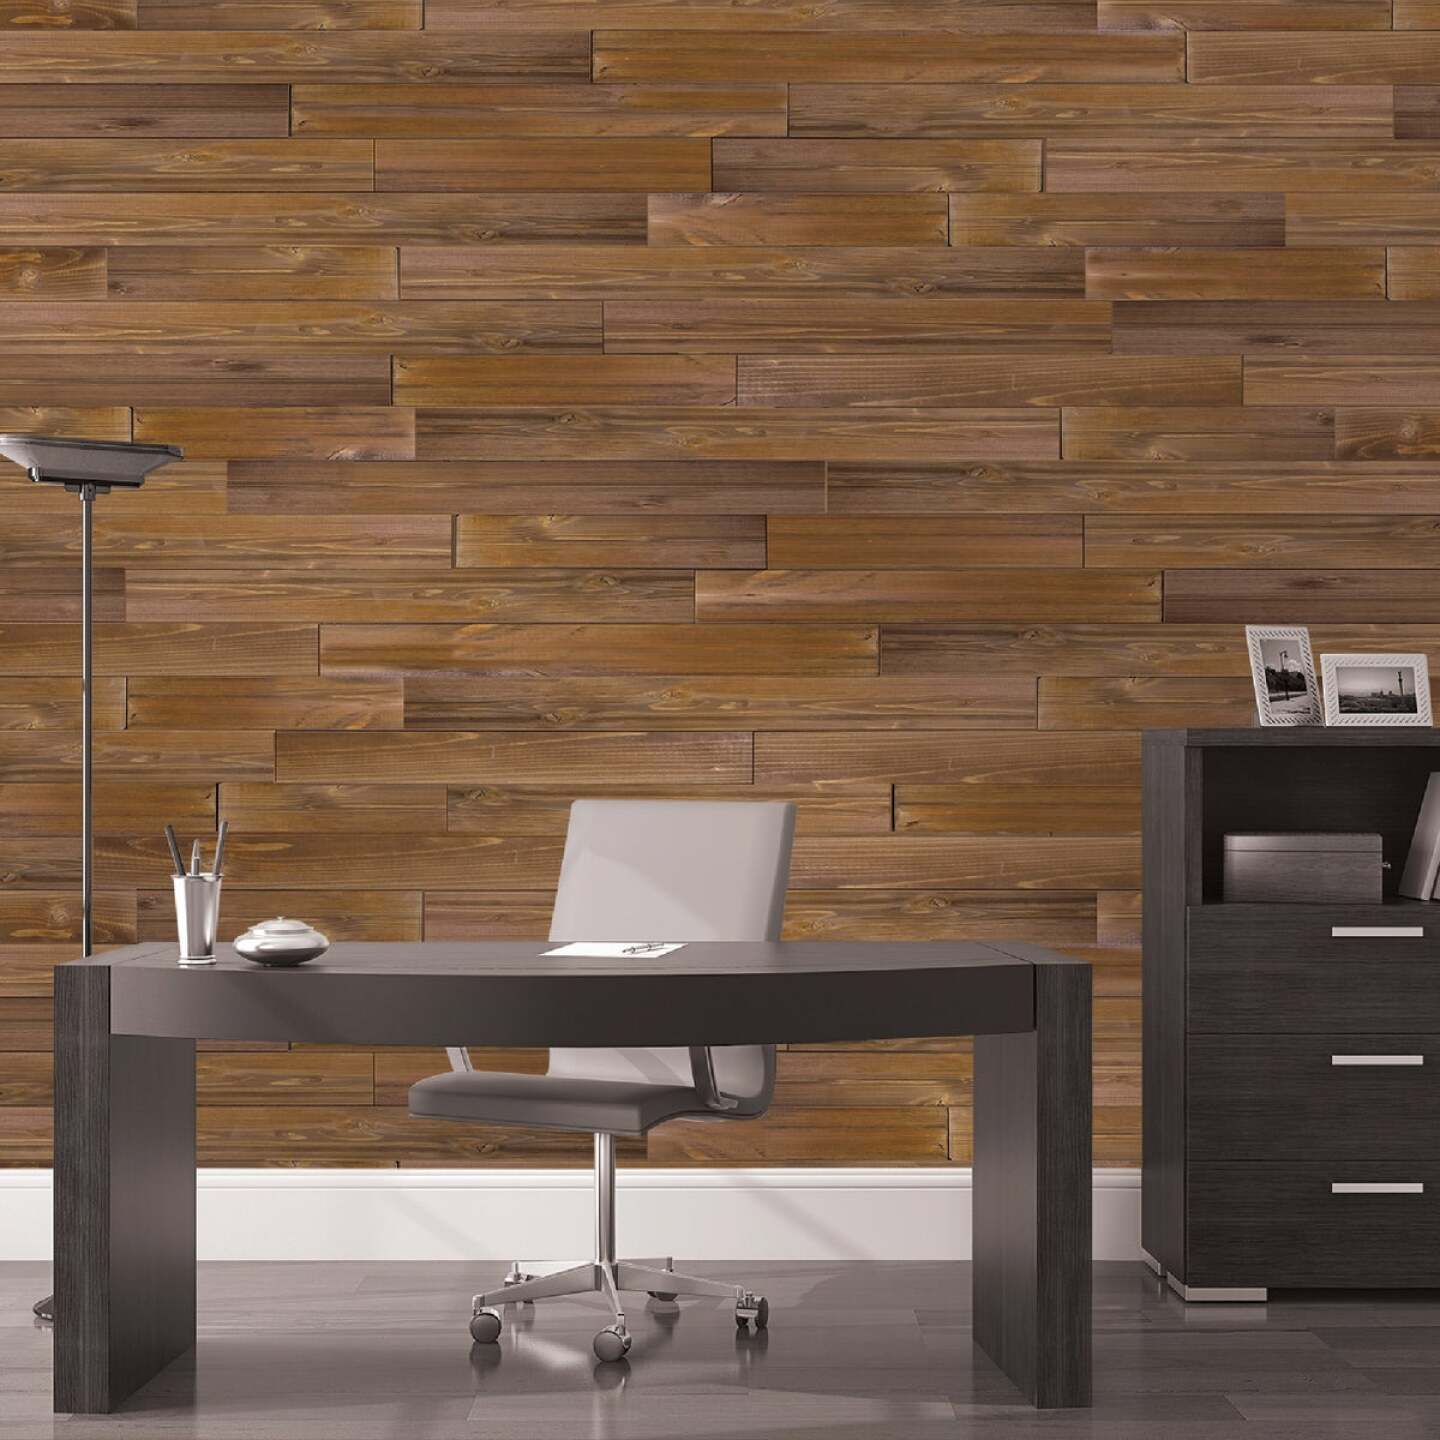 Global Product Sourcing 5.375 In W. x 5/16 In. Thick Brown Reclaimed Wood Shiplap Board Image 3